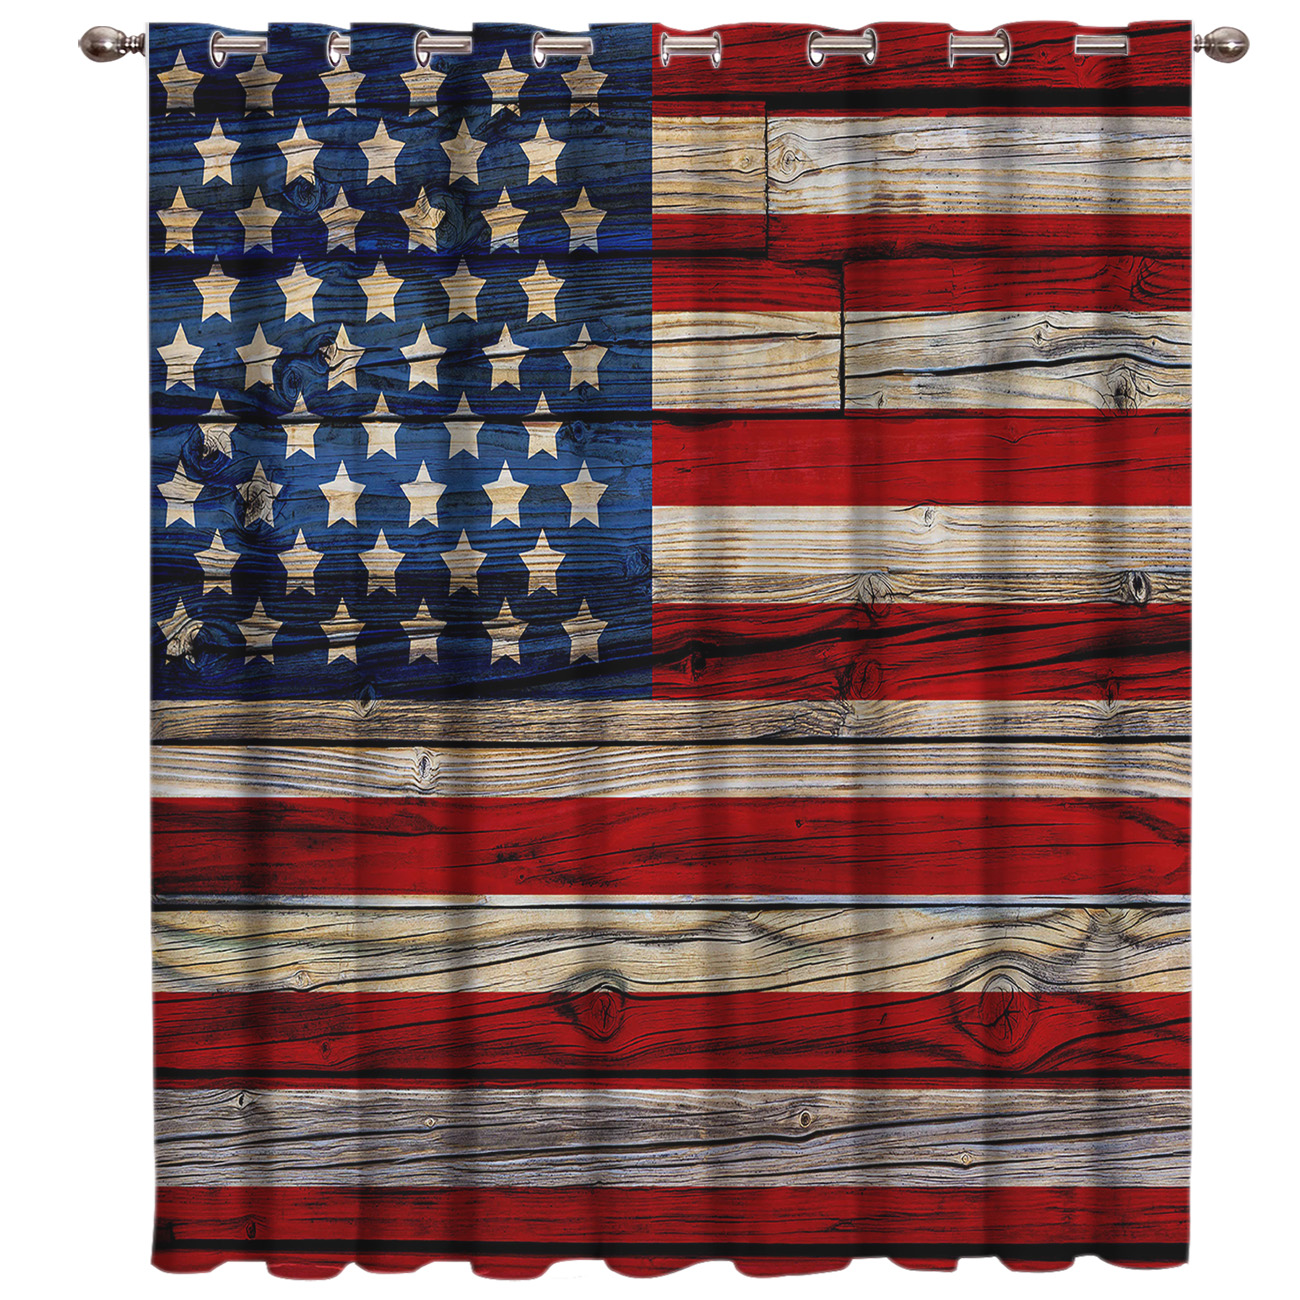 American Flag Window Treatments Curtains Valance Room Curtains Large Window Window Curtains Dark Window Blinds Outdoor Bedroom